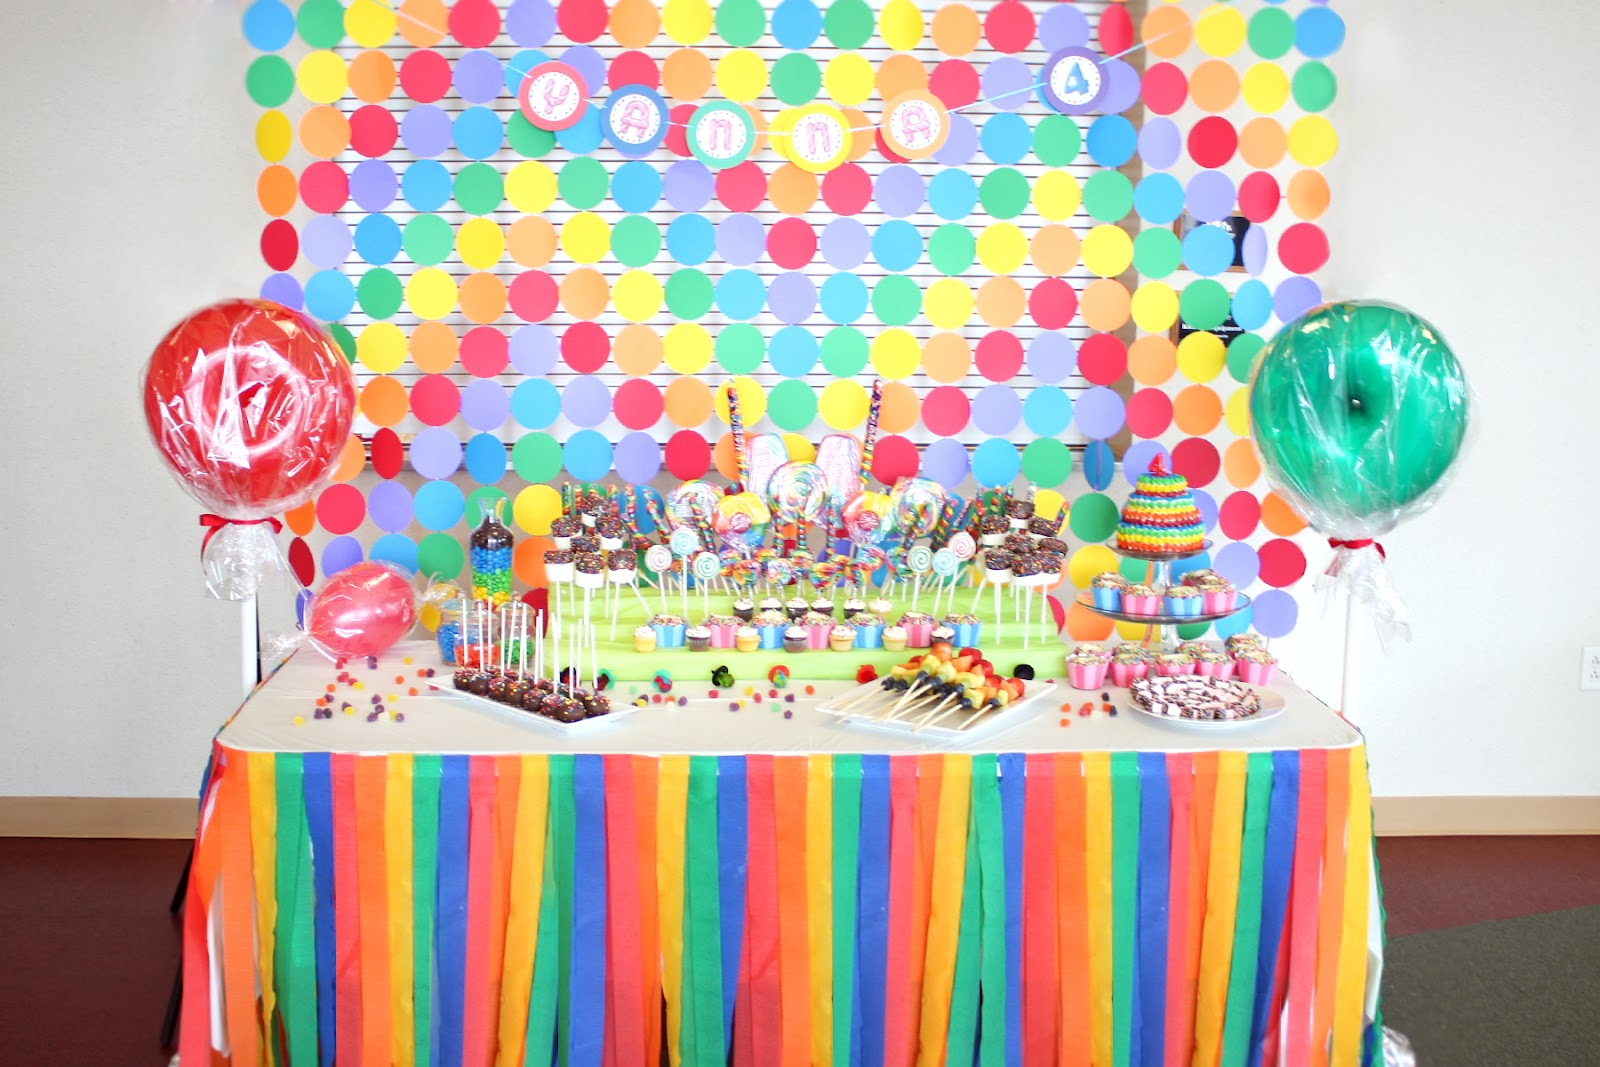 Candy Land Birthday Party : candyland birthday party ideas decorations - www.pureclipart.com